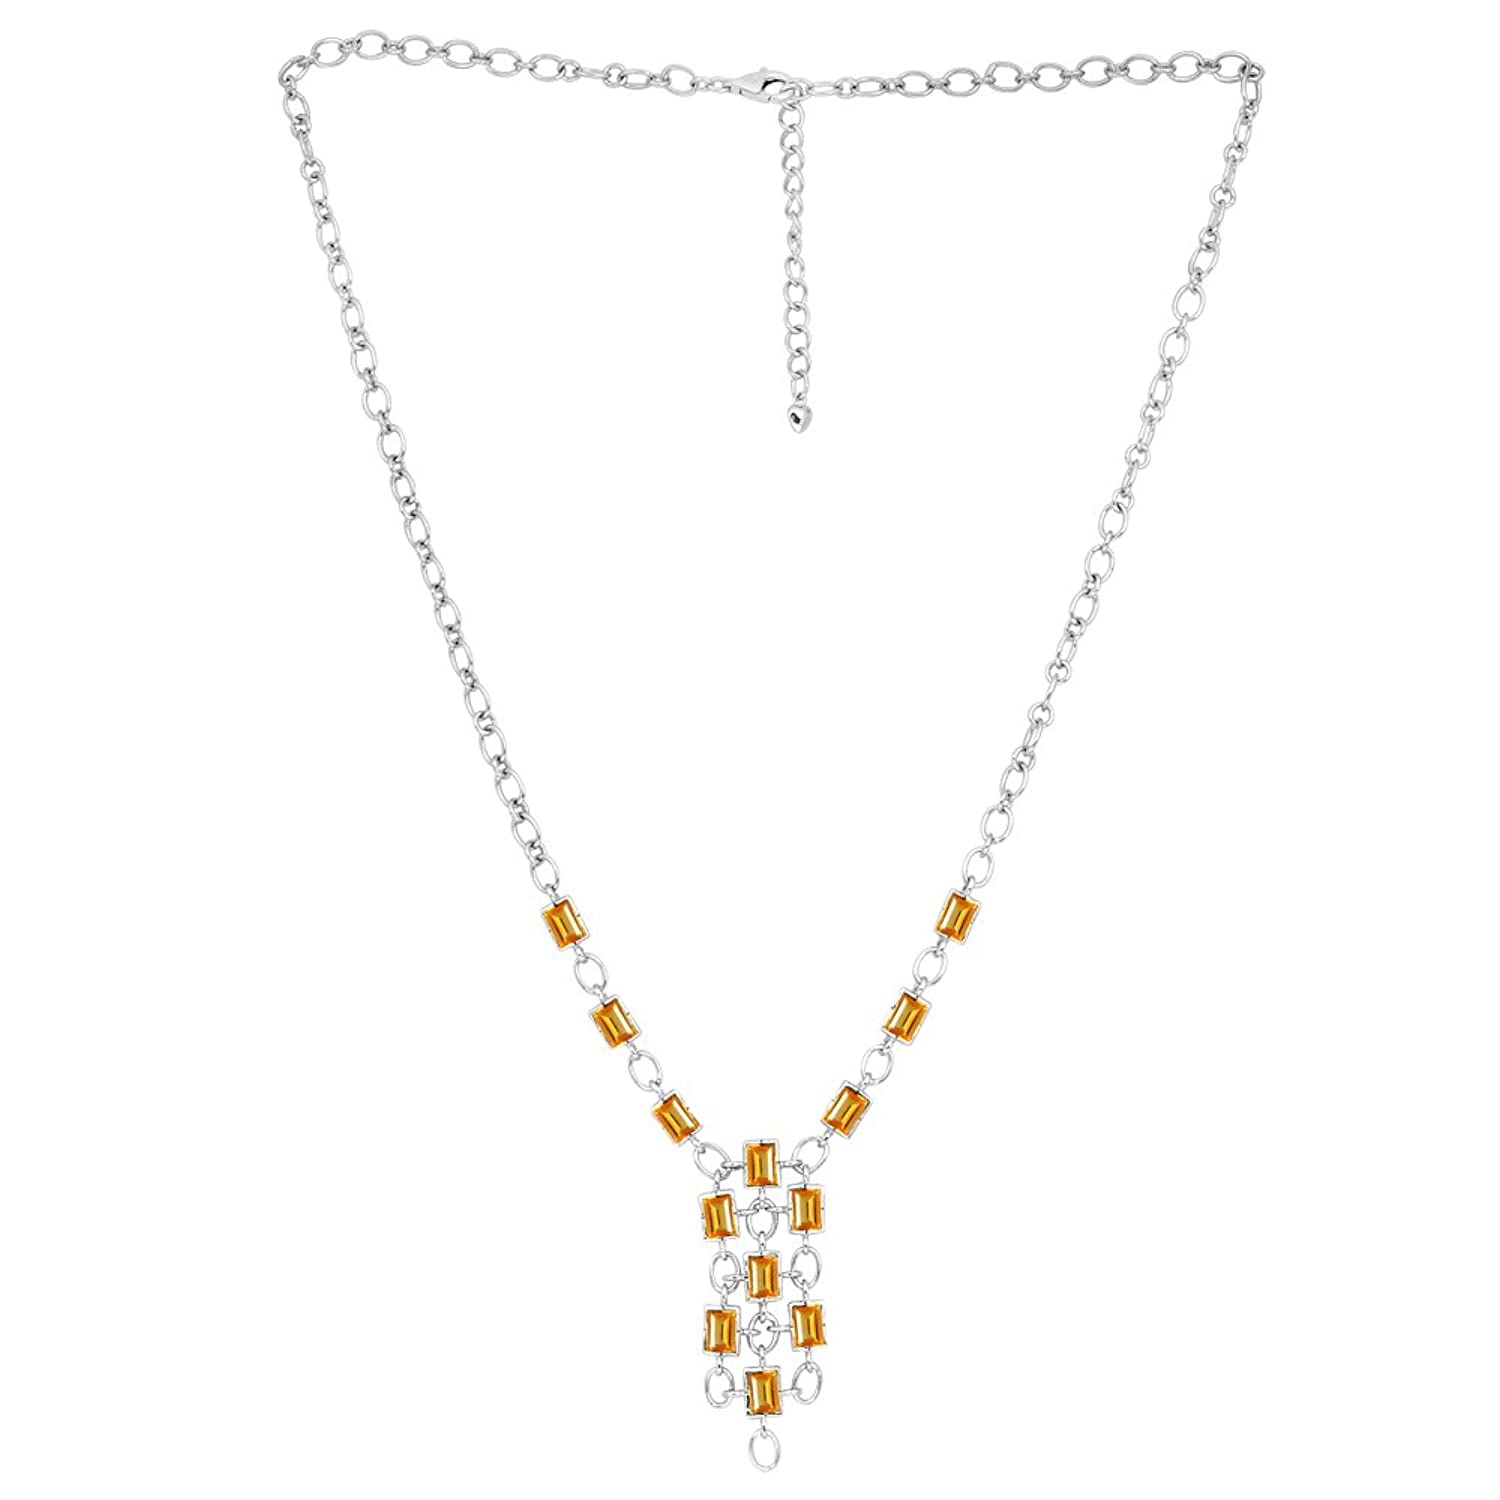 13 Ct Citrine Solid Sterling Silver Statement Necklace Natural Golden Orange 13ct Jewelry